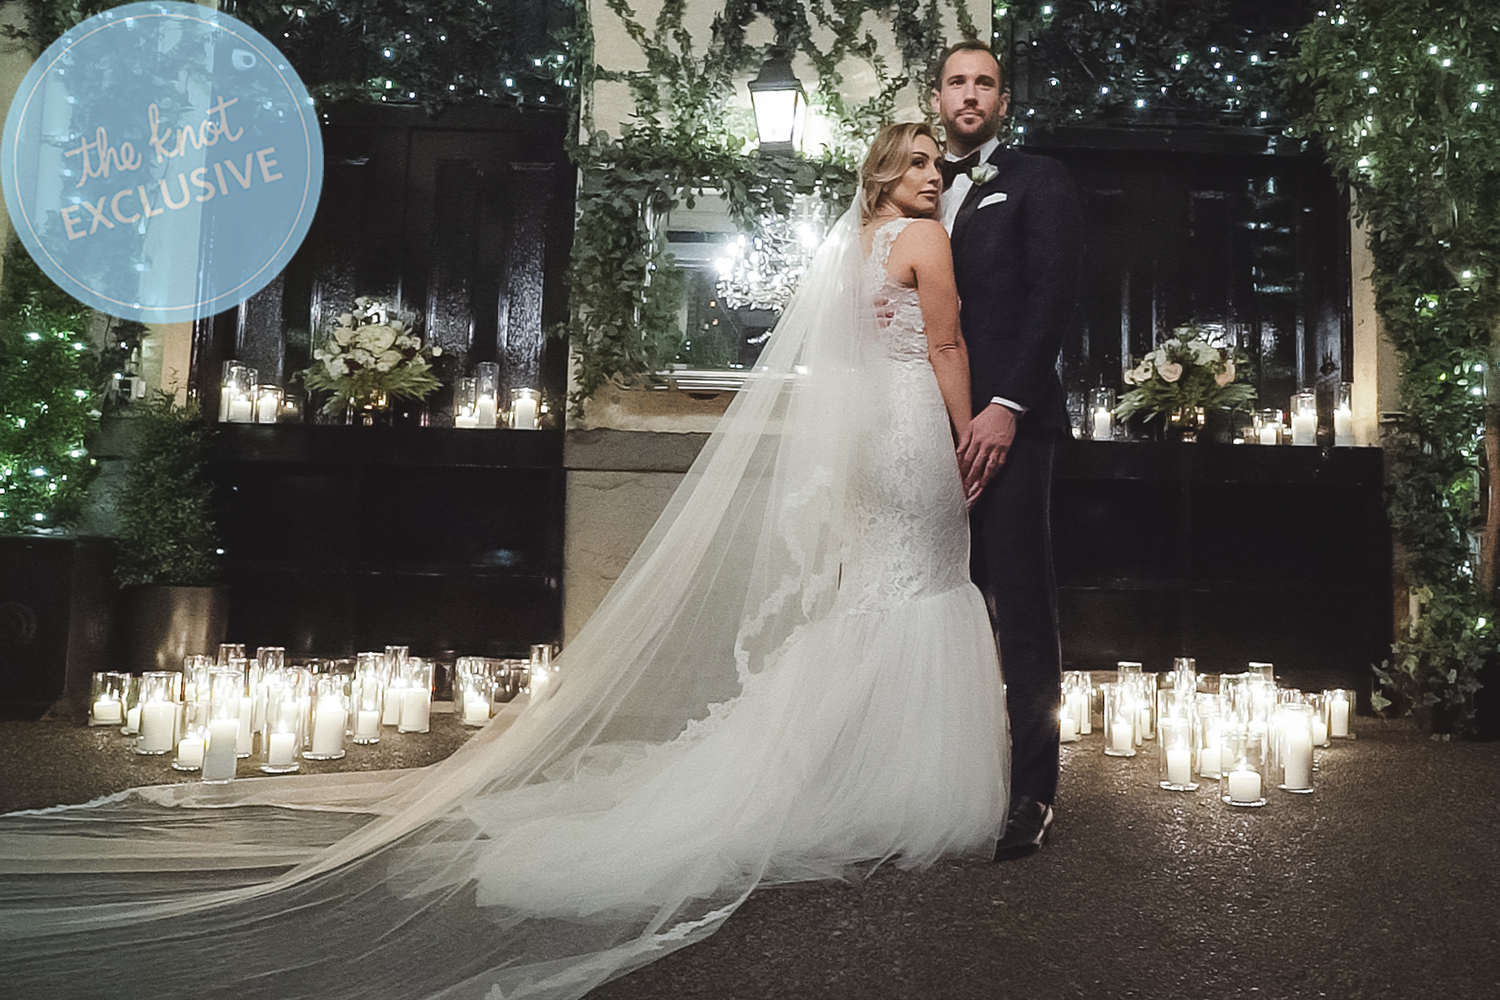 marcus grodd marries ally lutar in vancouver wedding